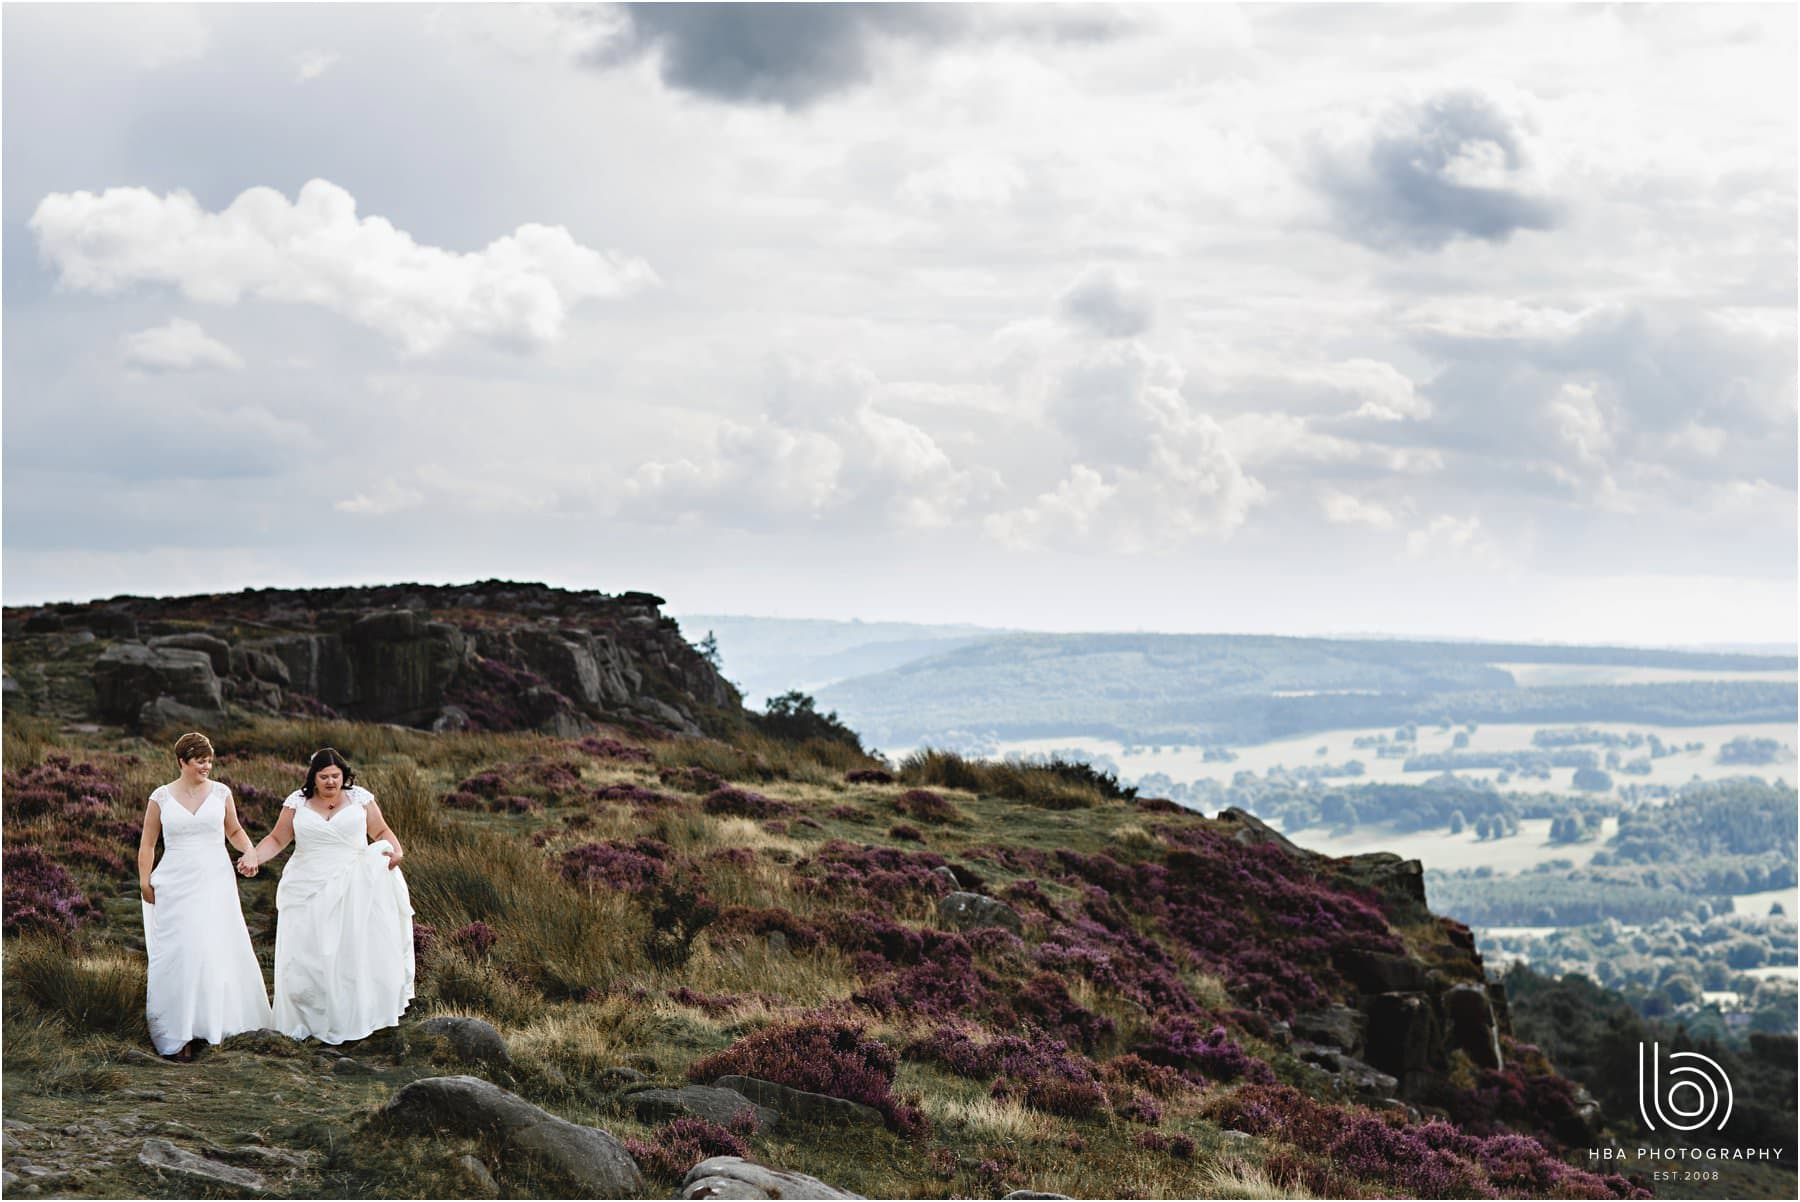 the two brides at Curbur Edge